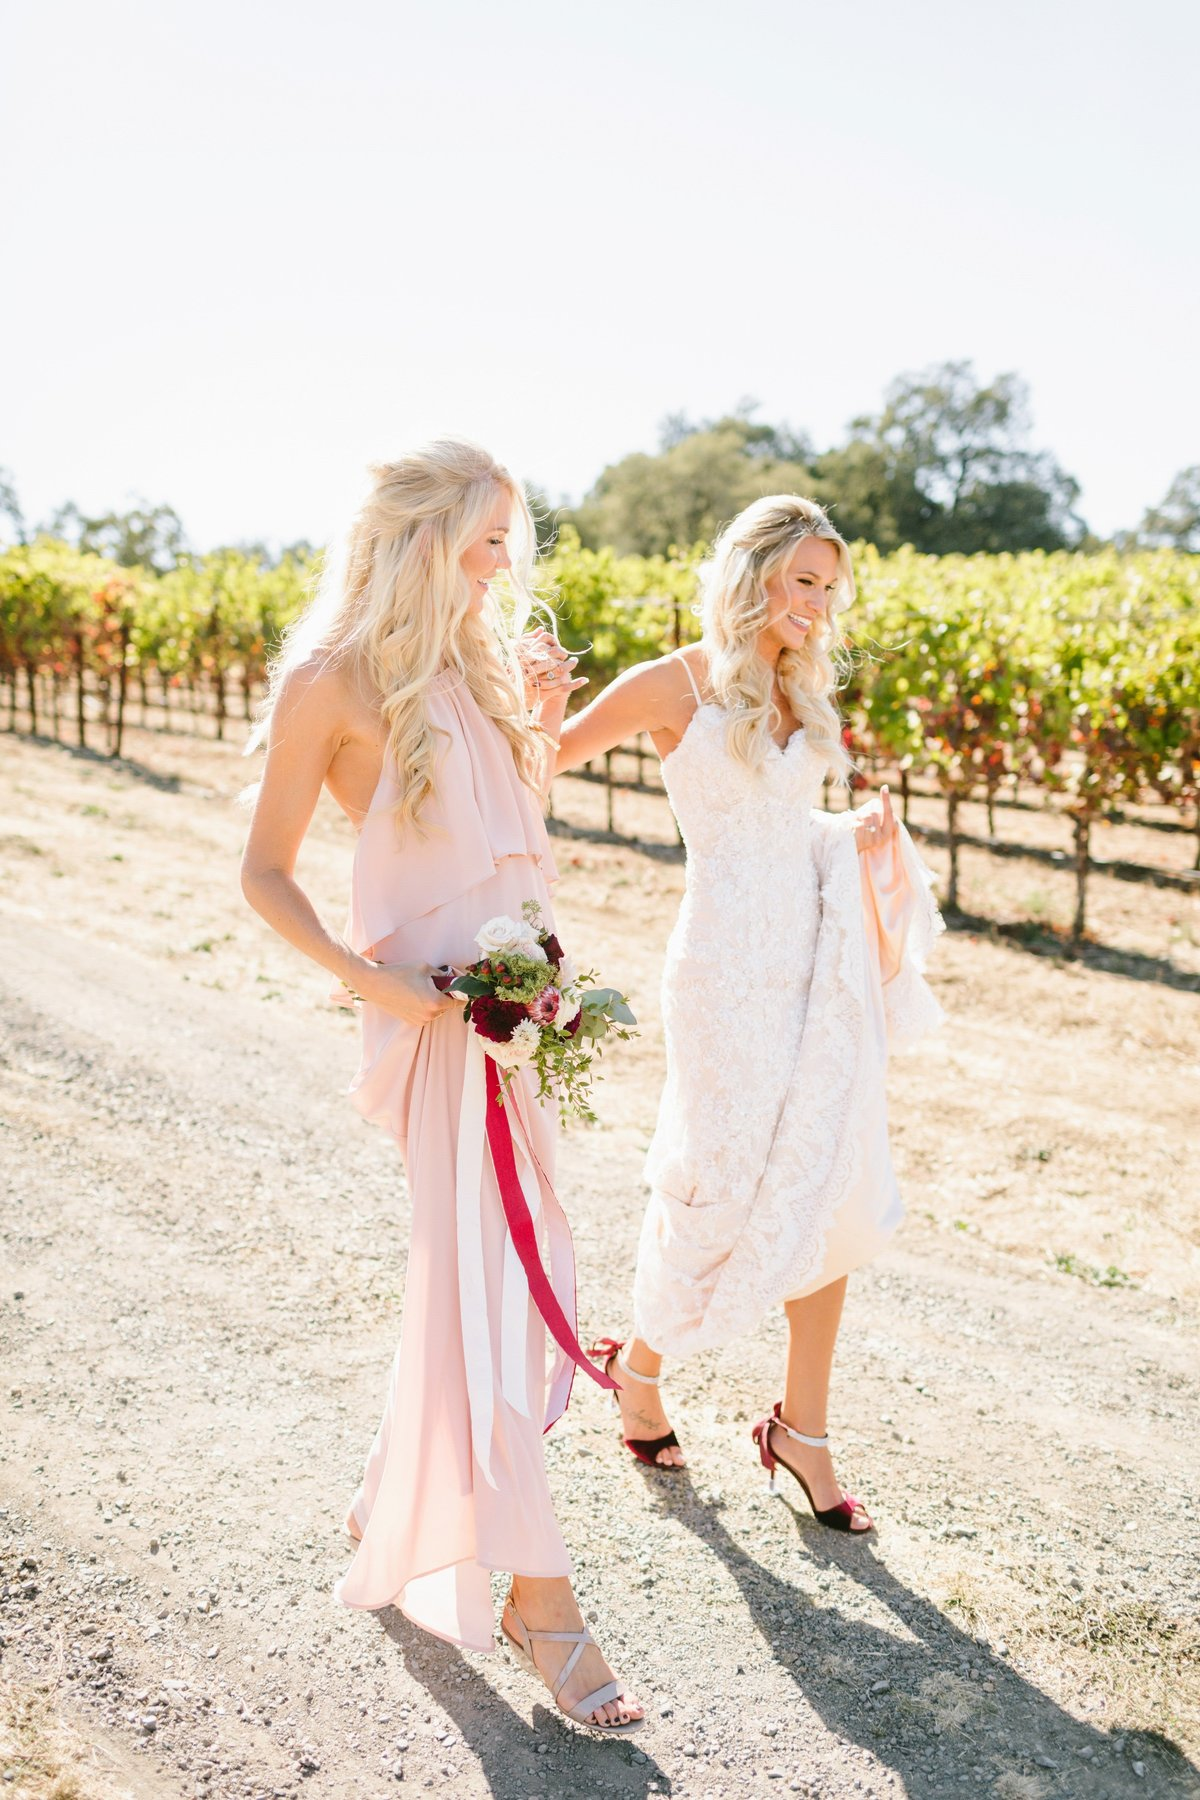 Best California Wedding Photographer-Jodee Debes Photography-190